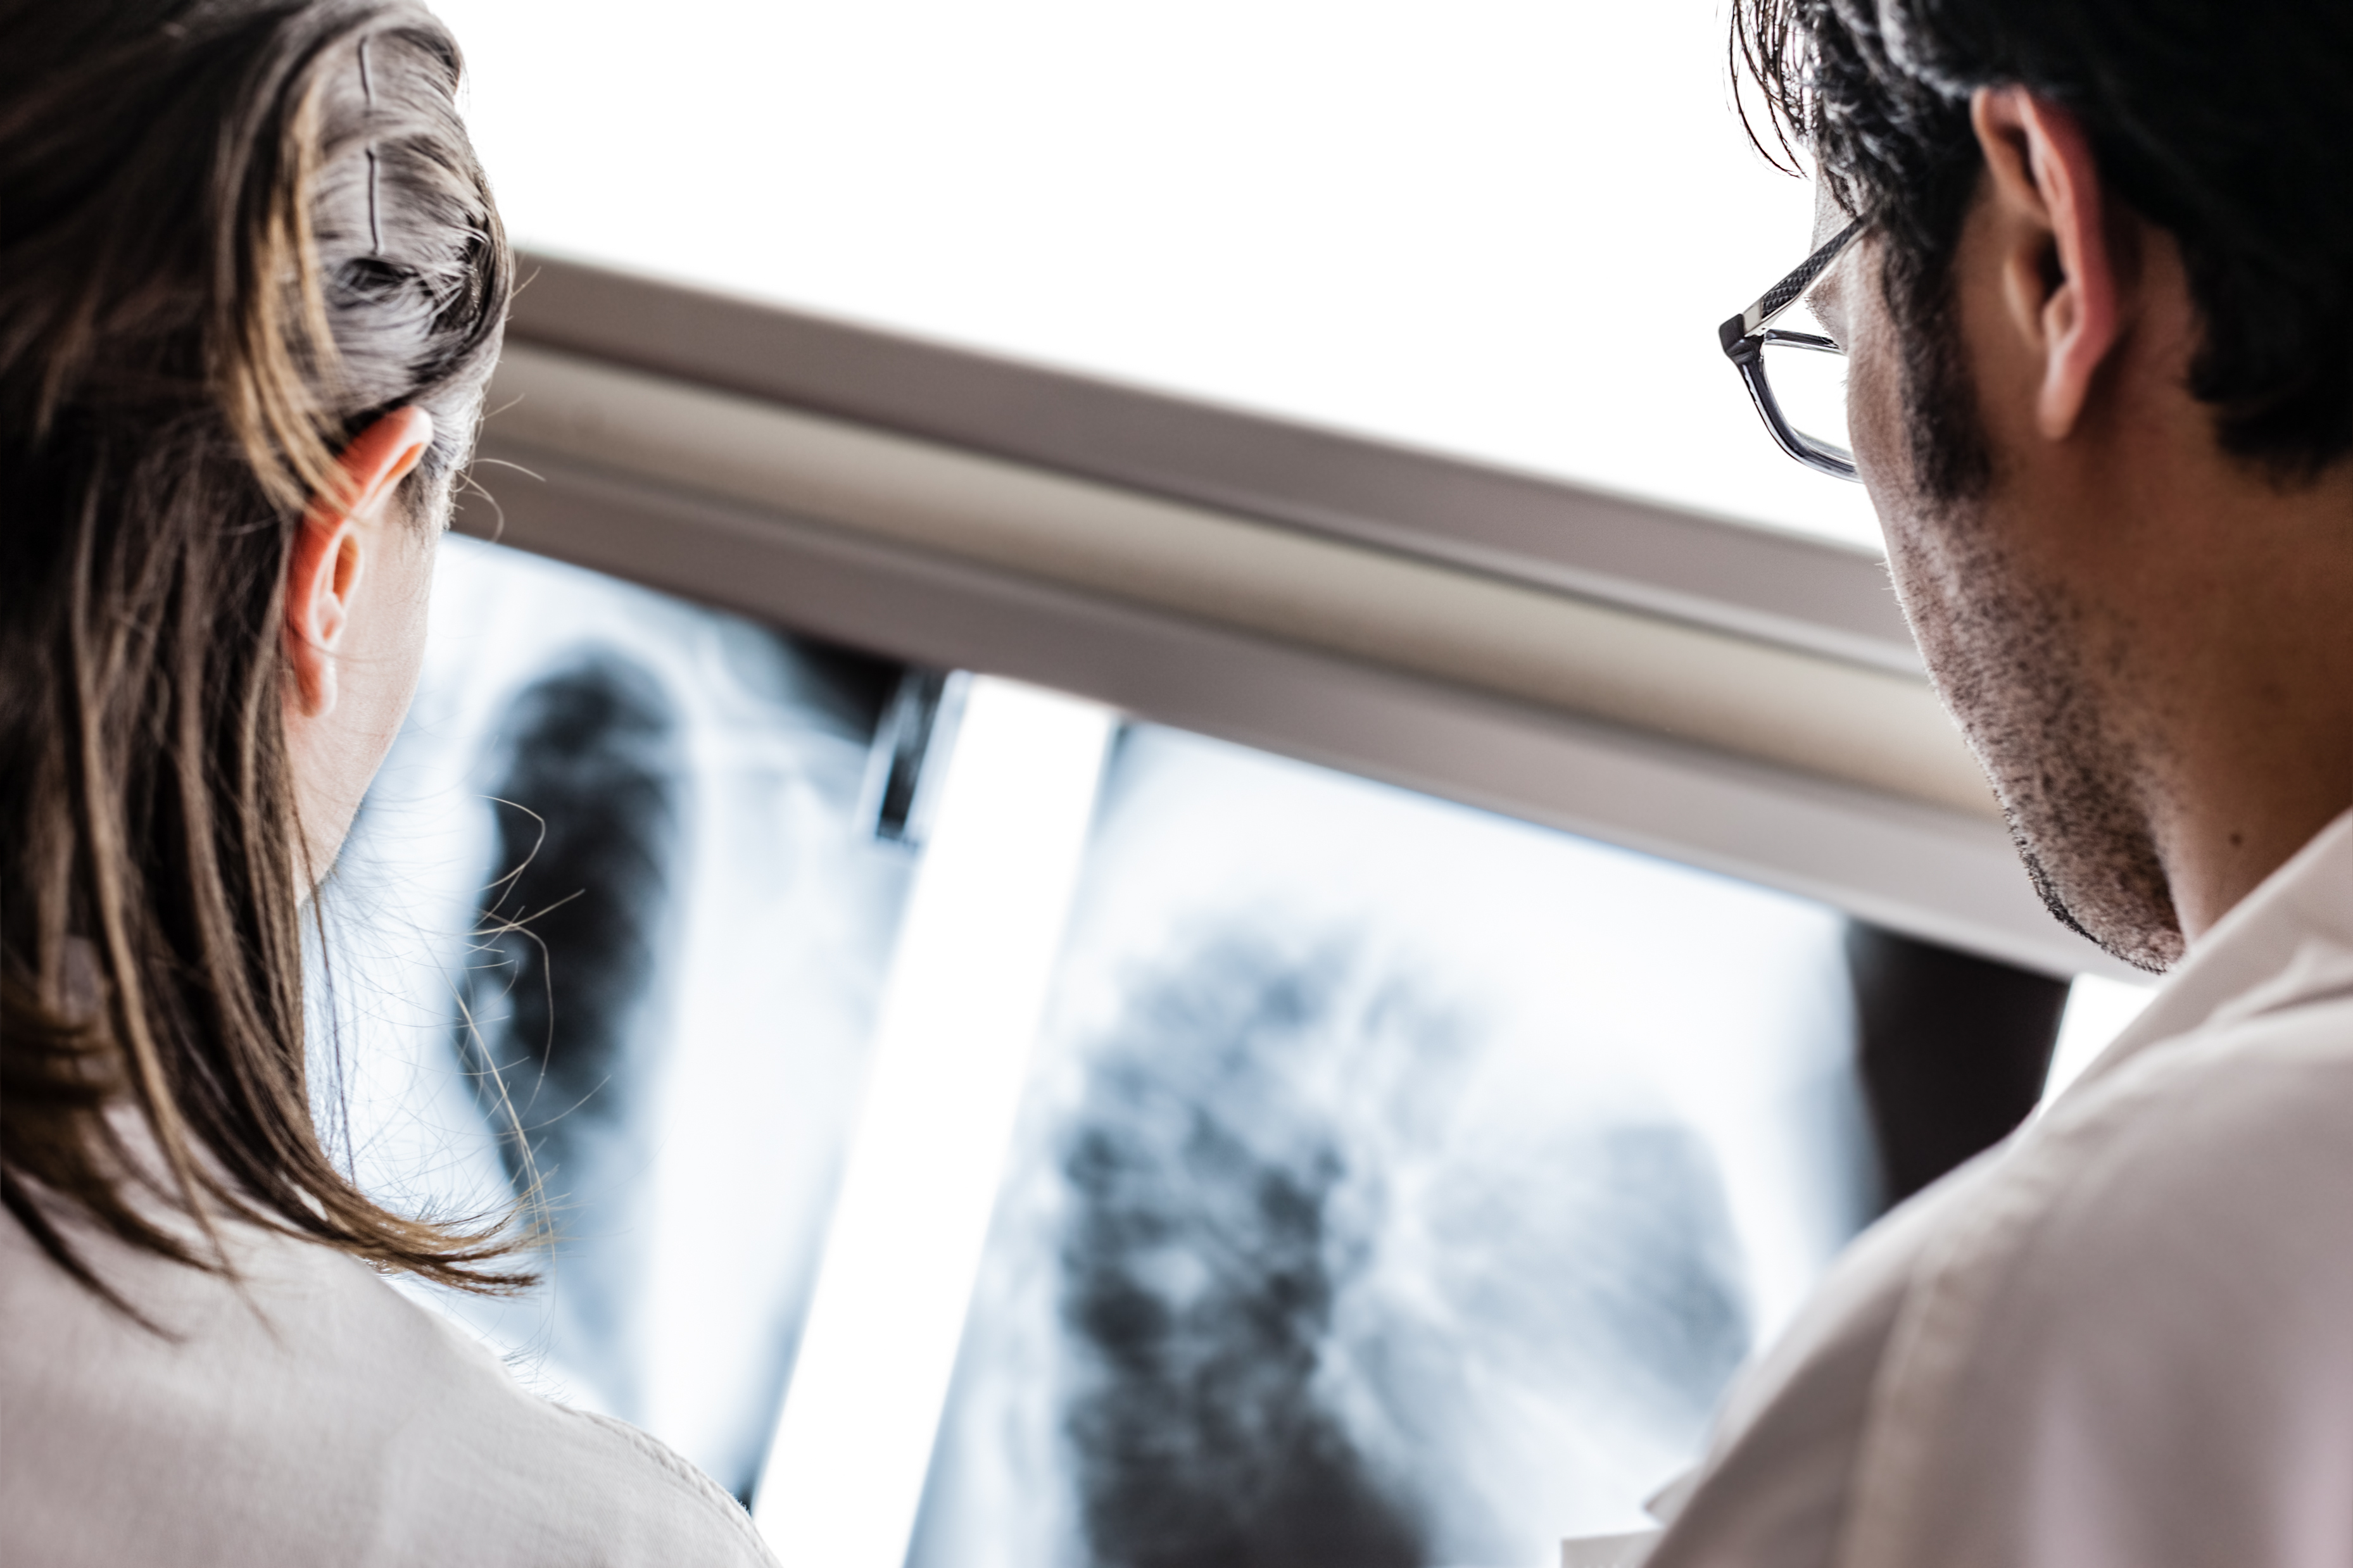 Clinical Trial to Assess a Pioneering Breath Test for Lung Cancer Diagnosis